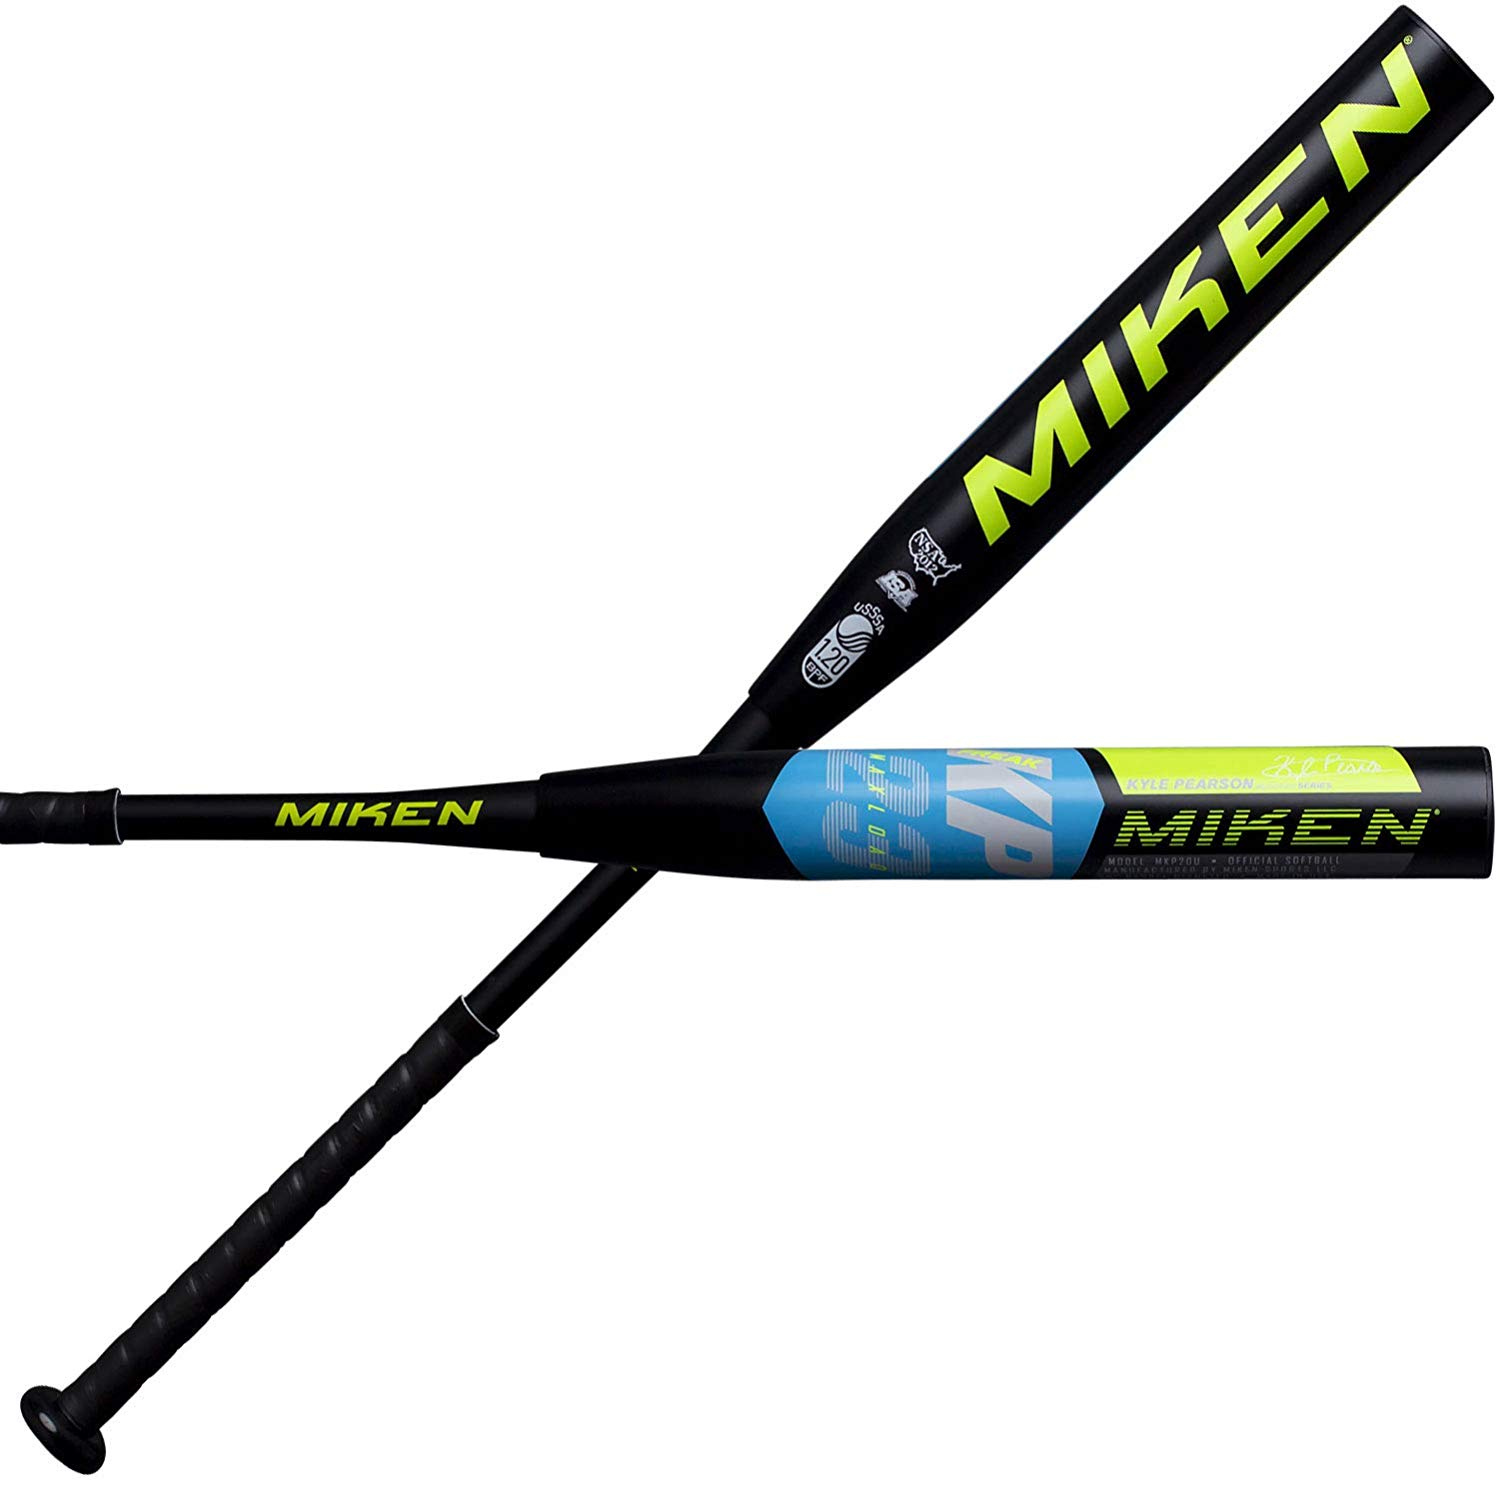 miken-2020-kyle-pearson-freak-23-maxload-usssa-slow-pitch-softball-bat-34-inch-25-oz MKP20U-3-25  658925042881 DESIGNED FOR ADULTS PLAYING RECREATIONAL AND COMPETITIVE SLOWPITCH SOFTBALL this Miken